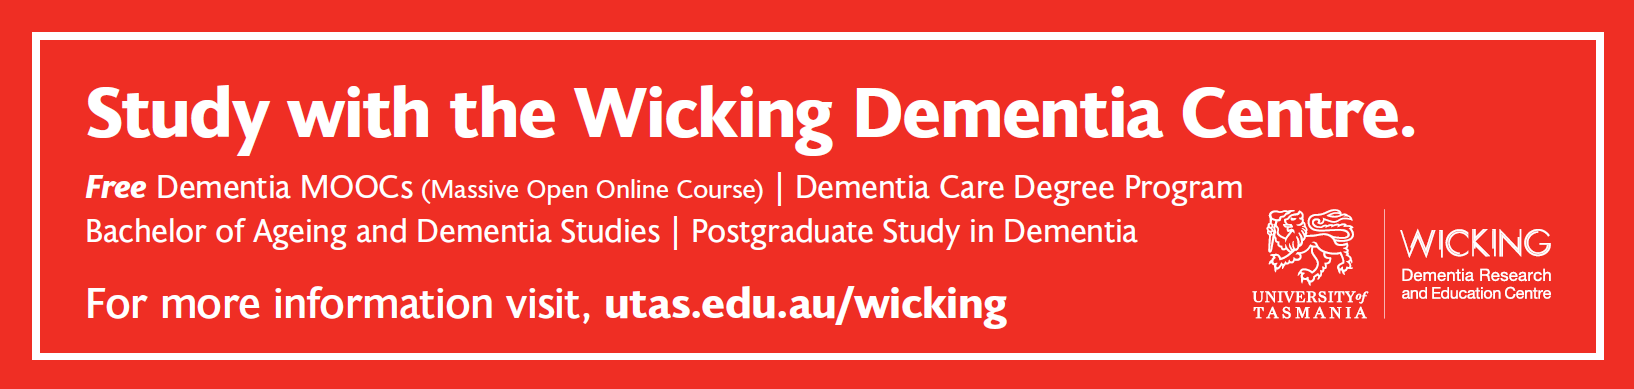 Wicking Dementia Education